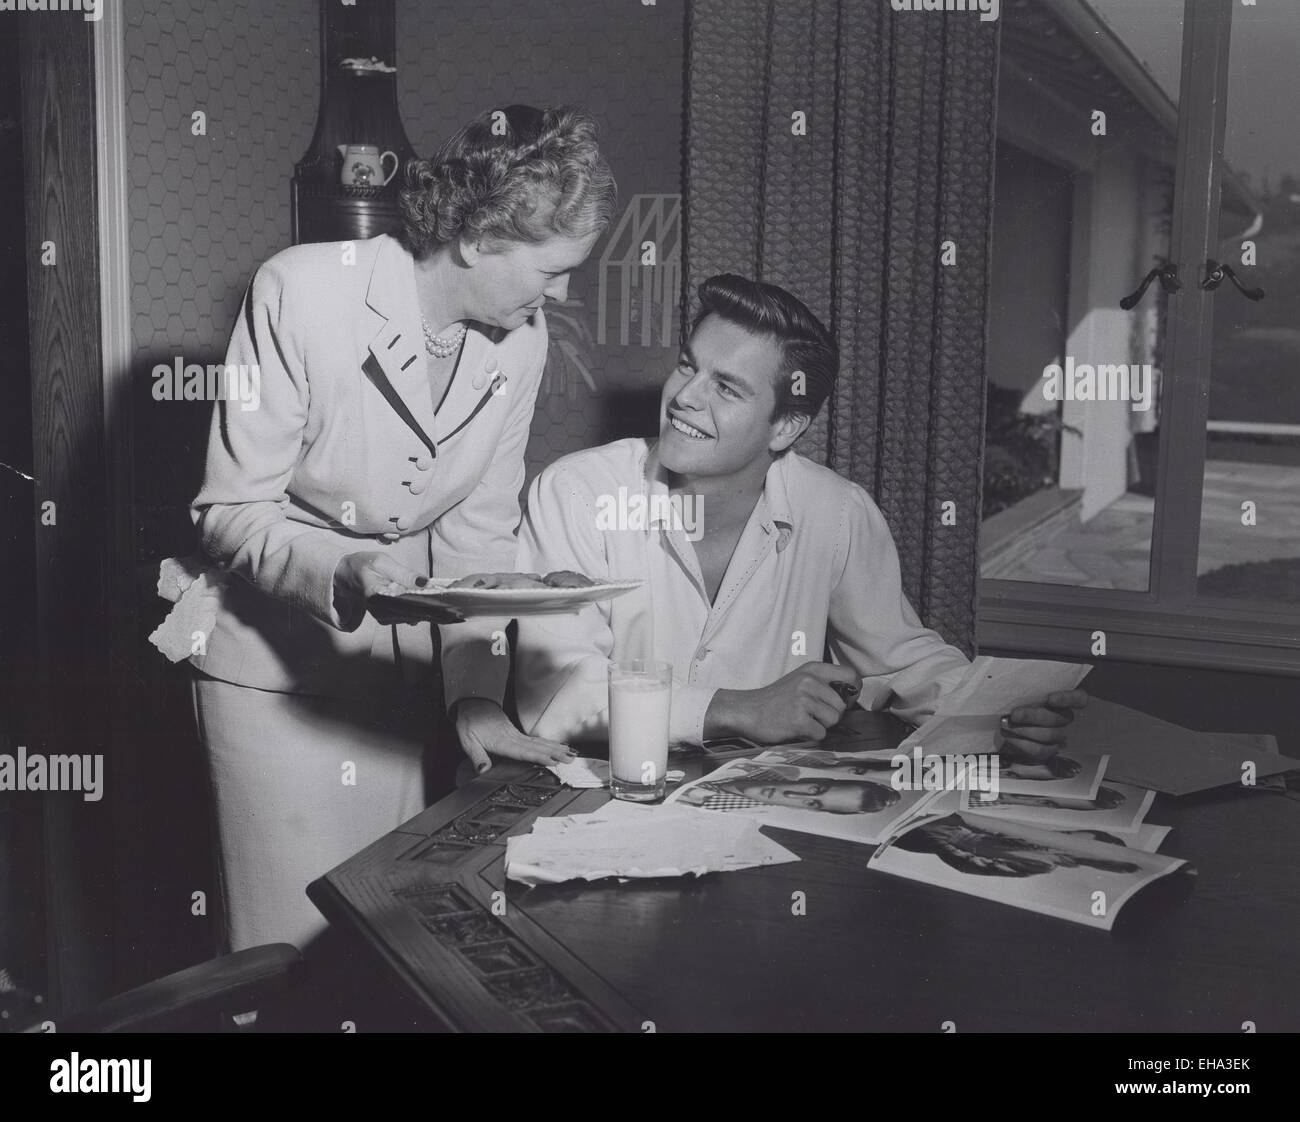 Robert Wagner Mother Smp Globe Photos Zuma Wire Alamy Live